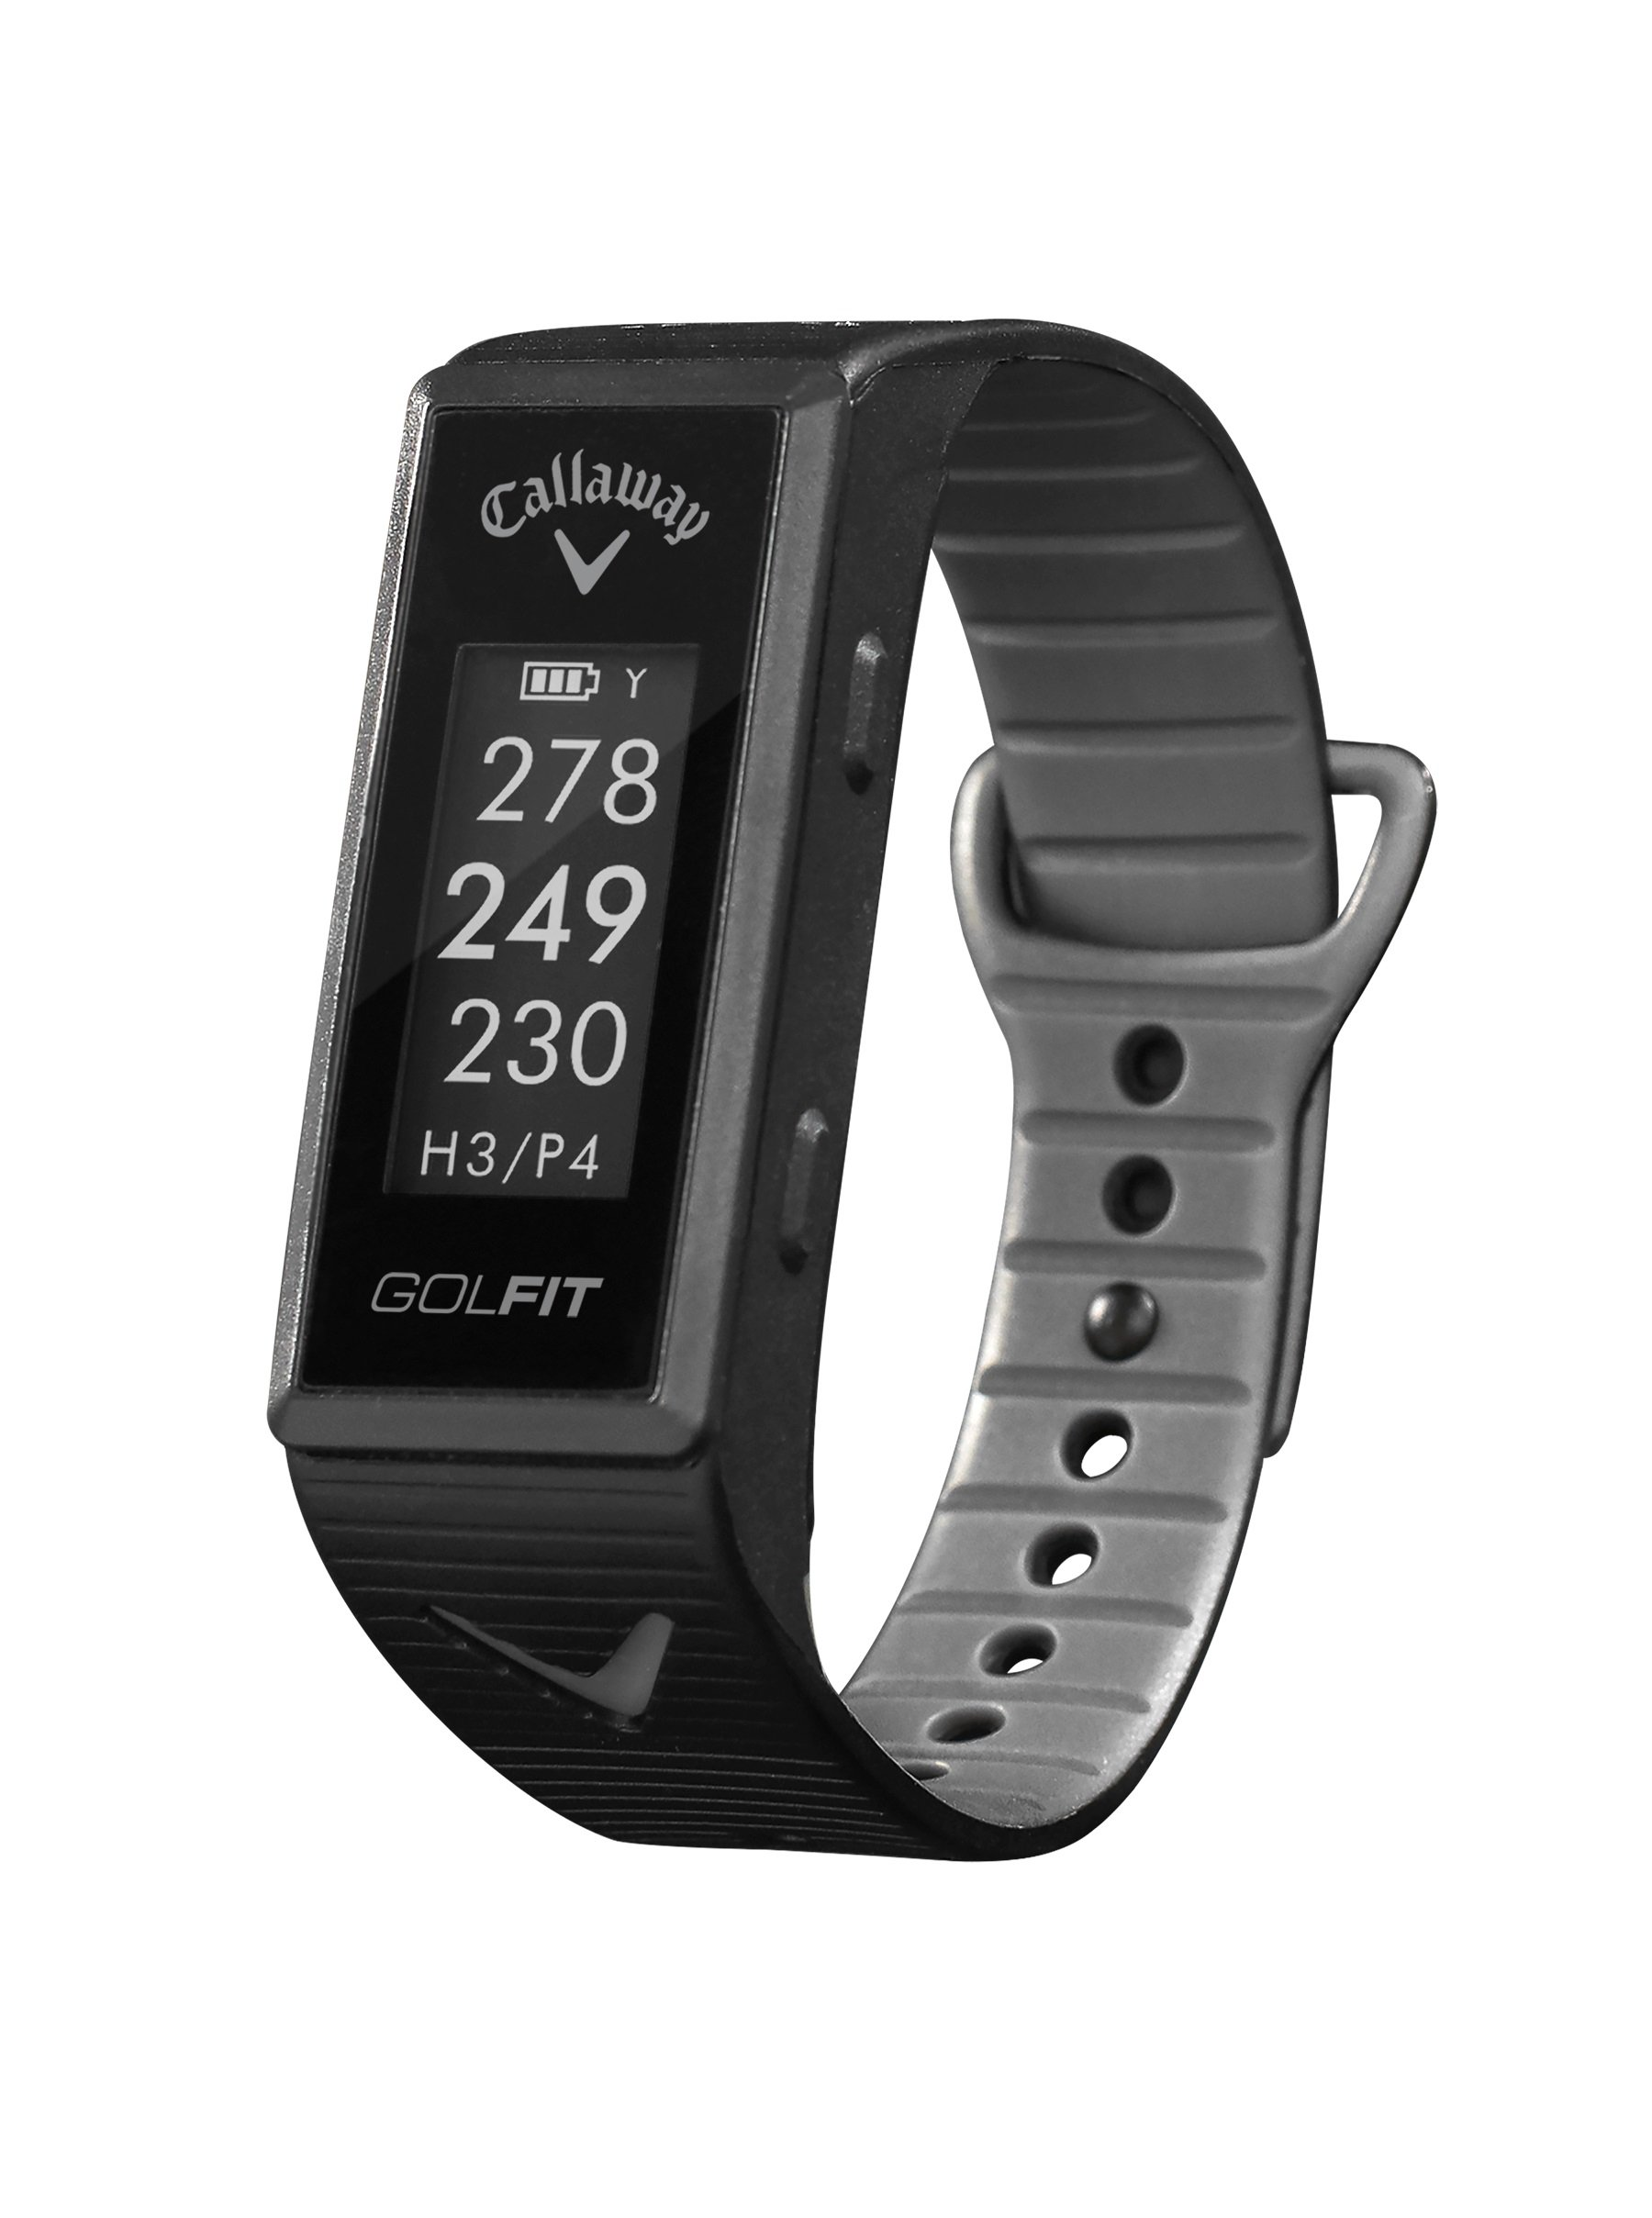 Callaway Golfit Golf GPS Band (with Fitness Tracking)